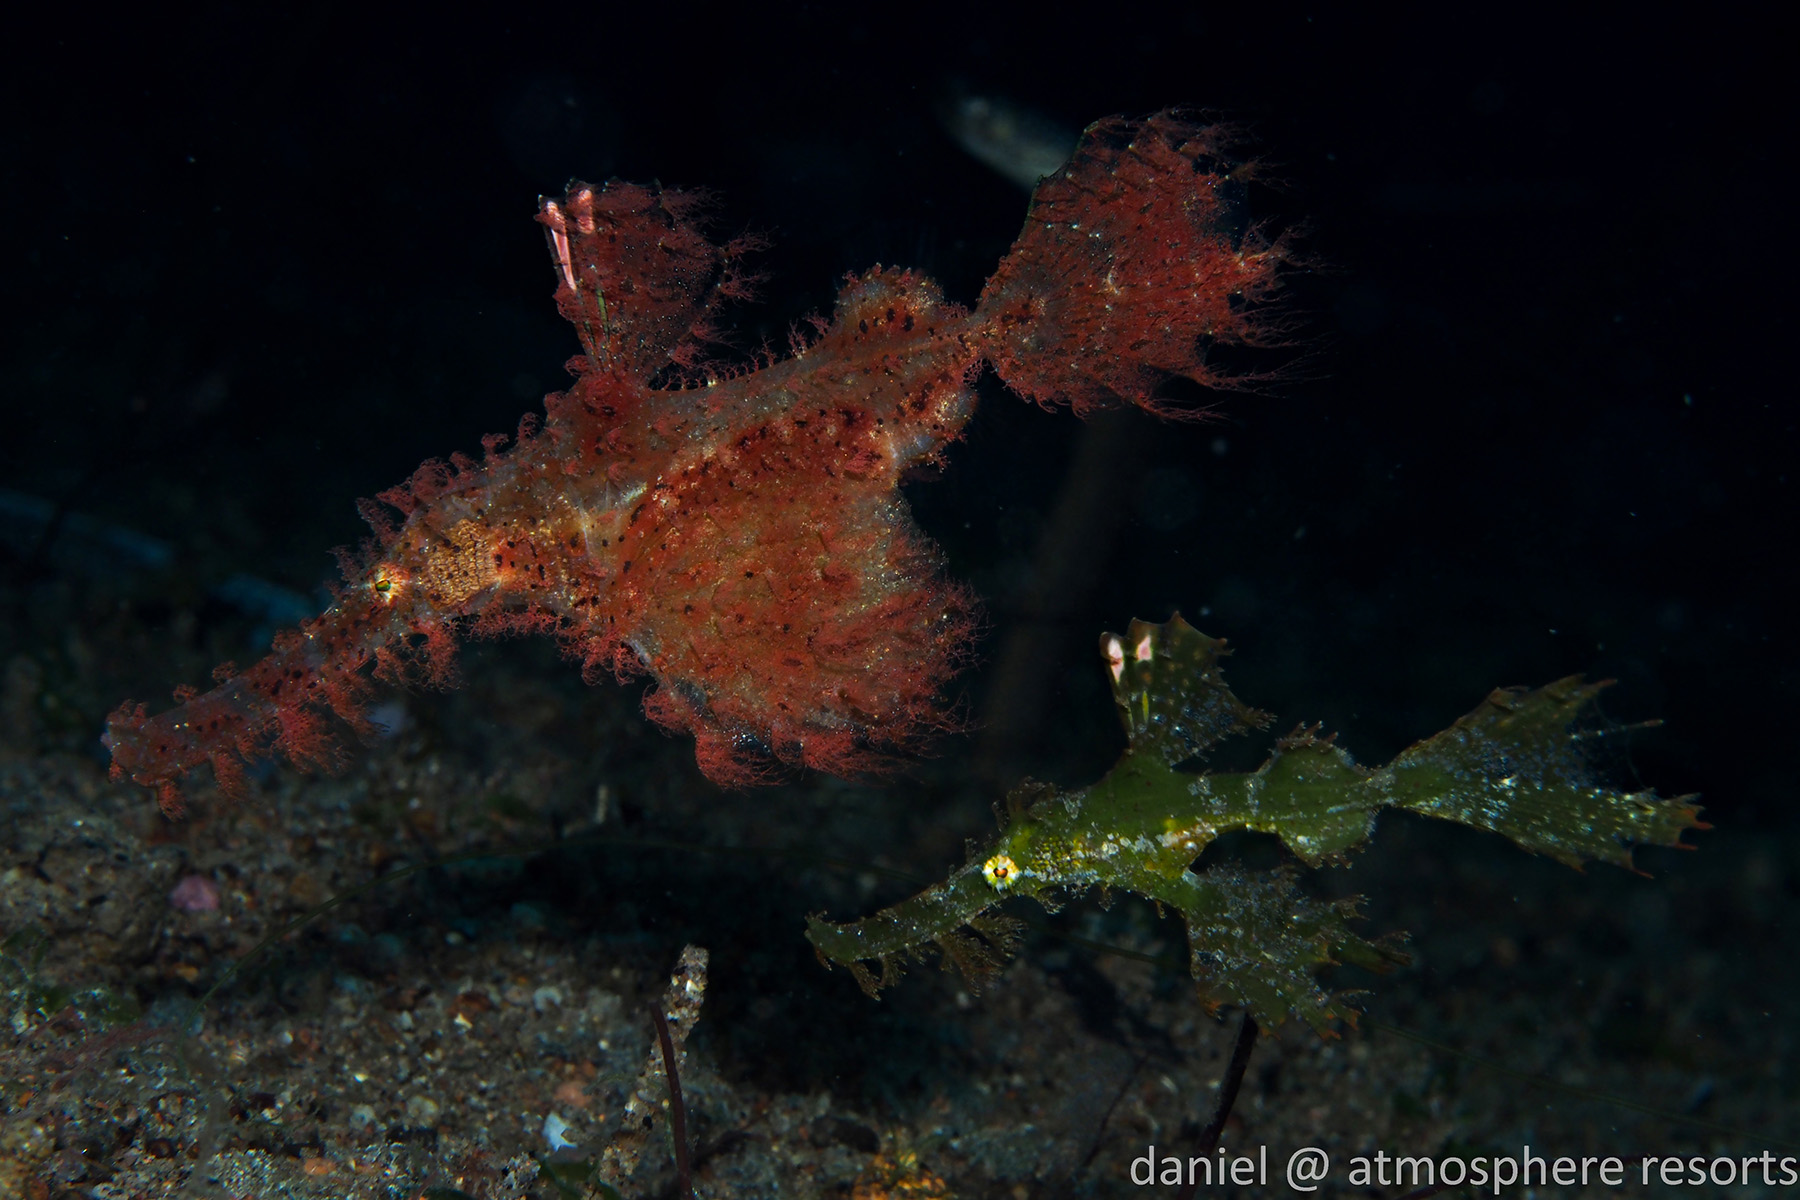 Roughsnout ghost pipefish by Daniel Geary